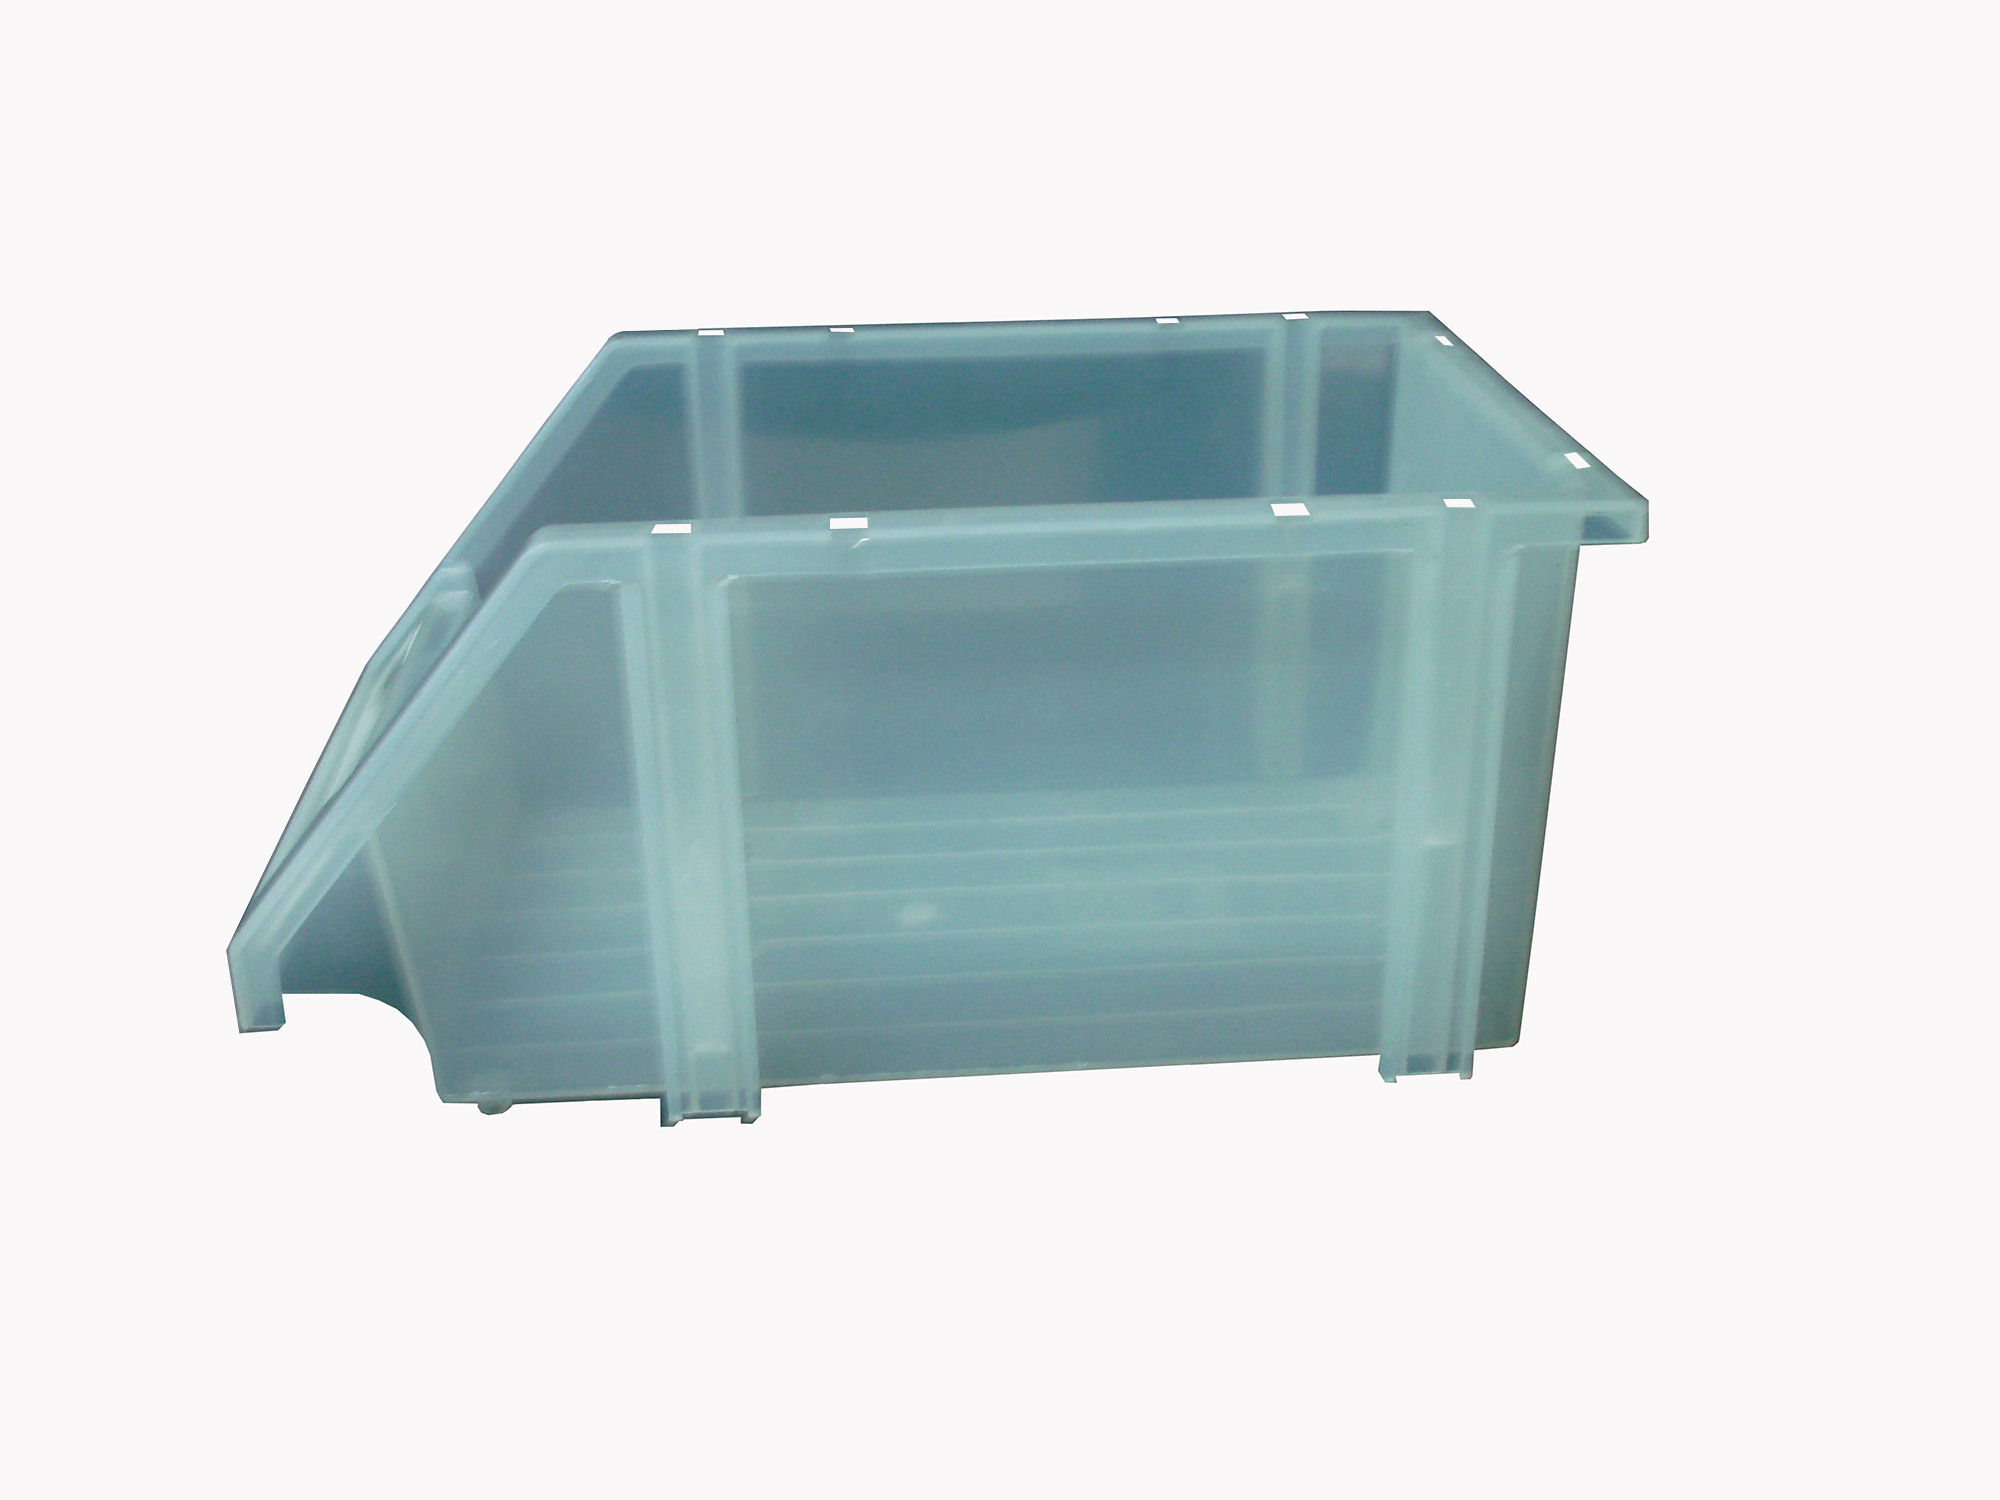 KCT K1218T Stackable Bin Translucent (small) (RHB0273)